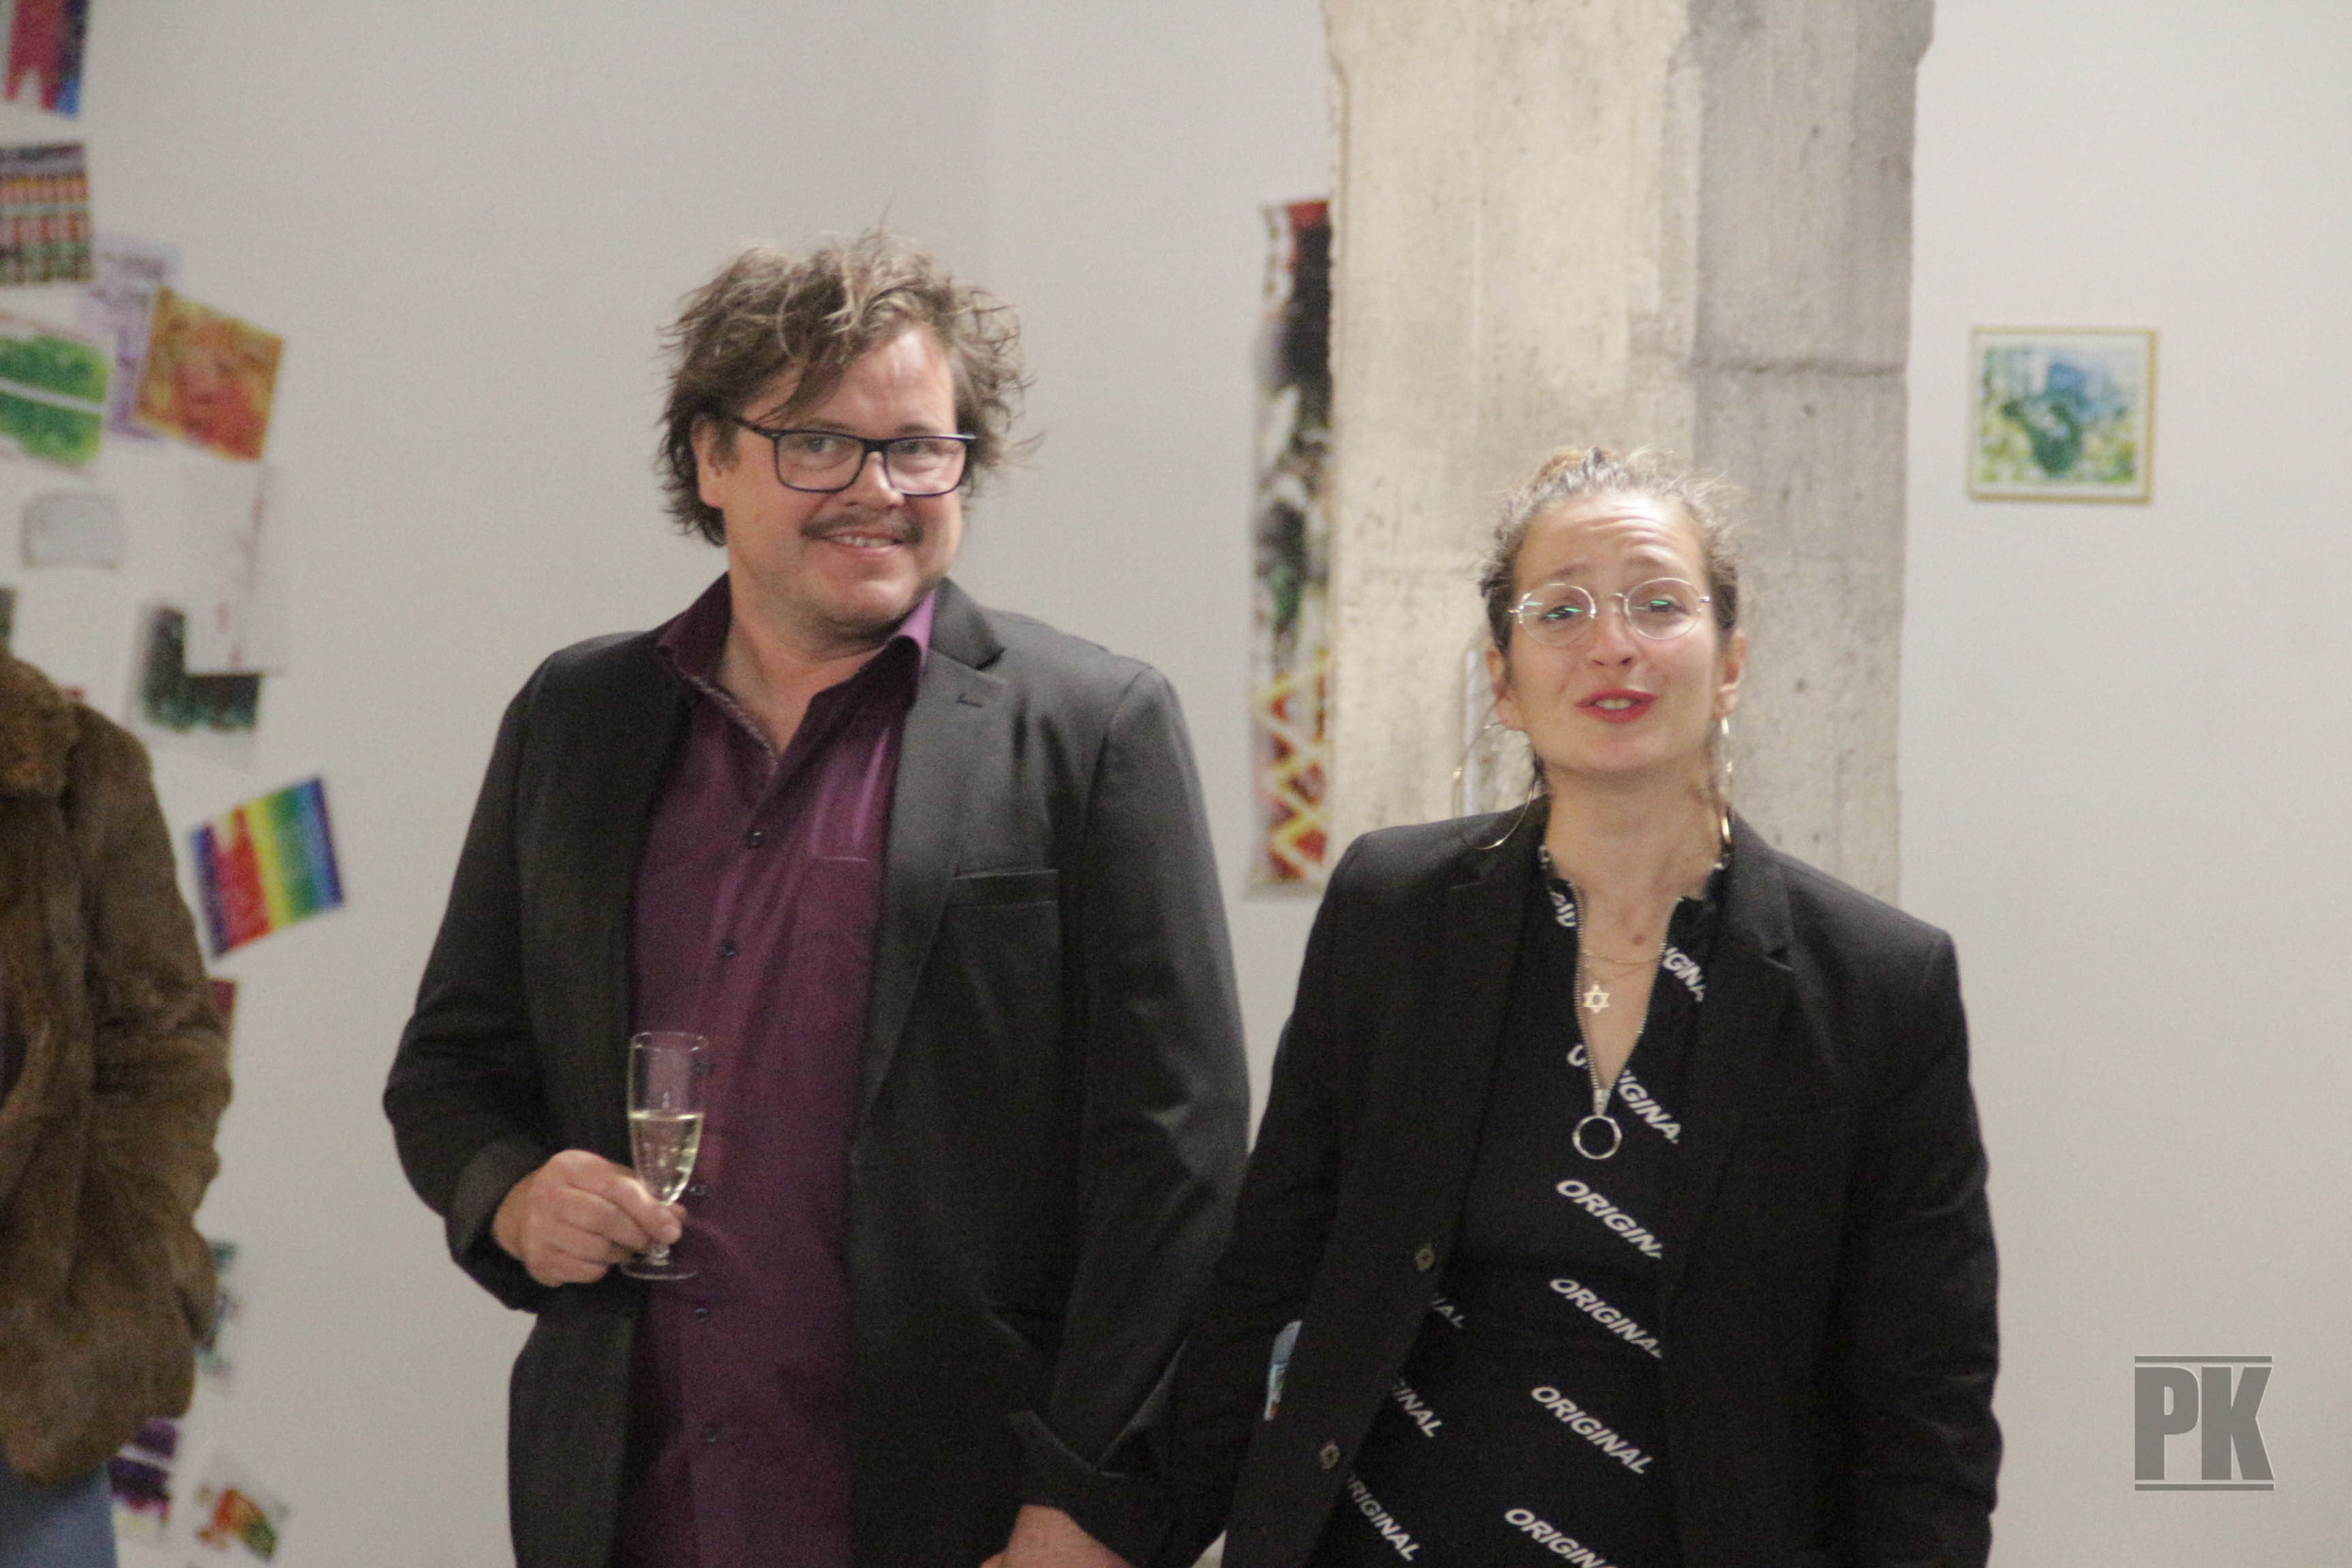 Grateful-Park-vernissage-20-Sept-2019-PILOTENKUECHE-International-Art-Program-Leipzig-Germany-photo-Stanley-Louis-for-PK-22